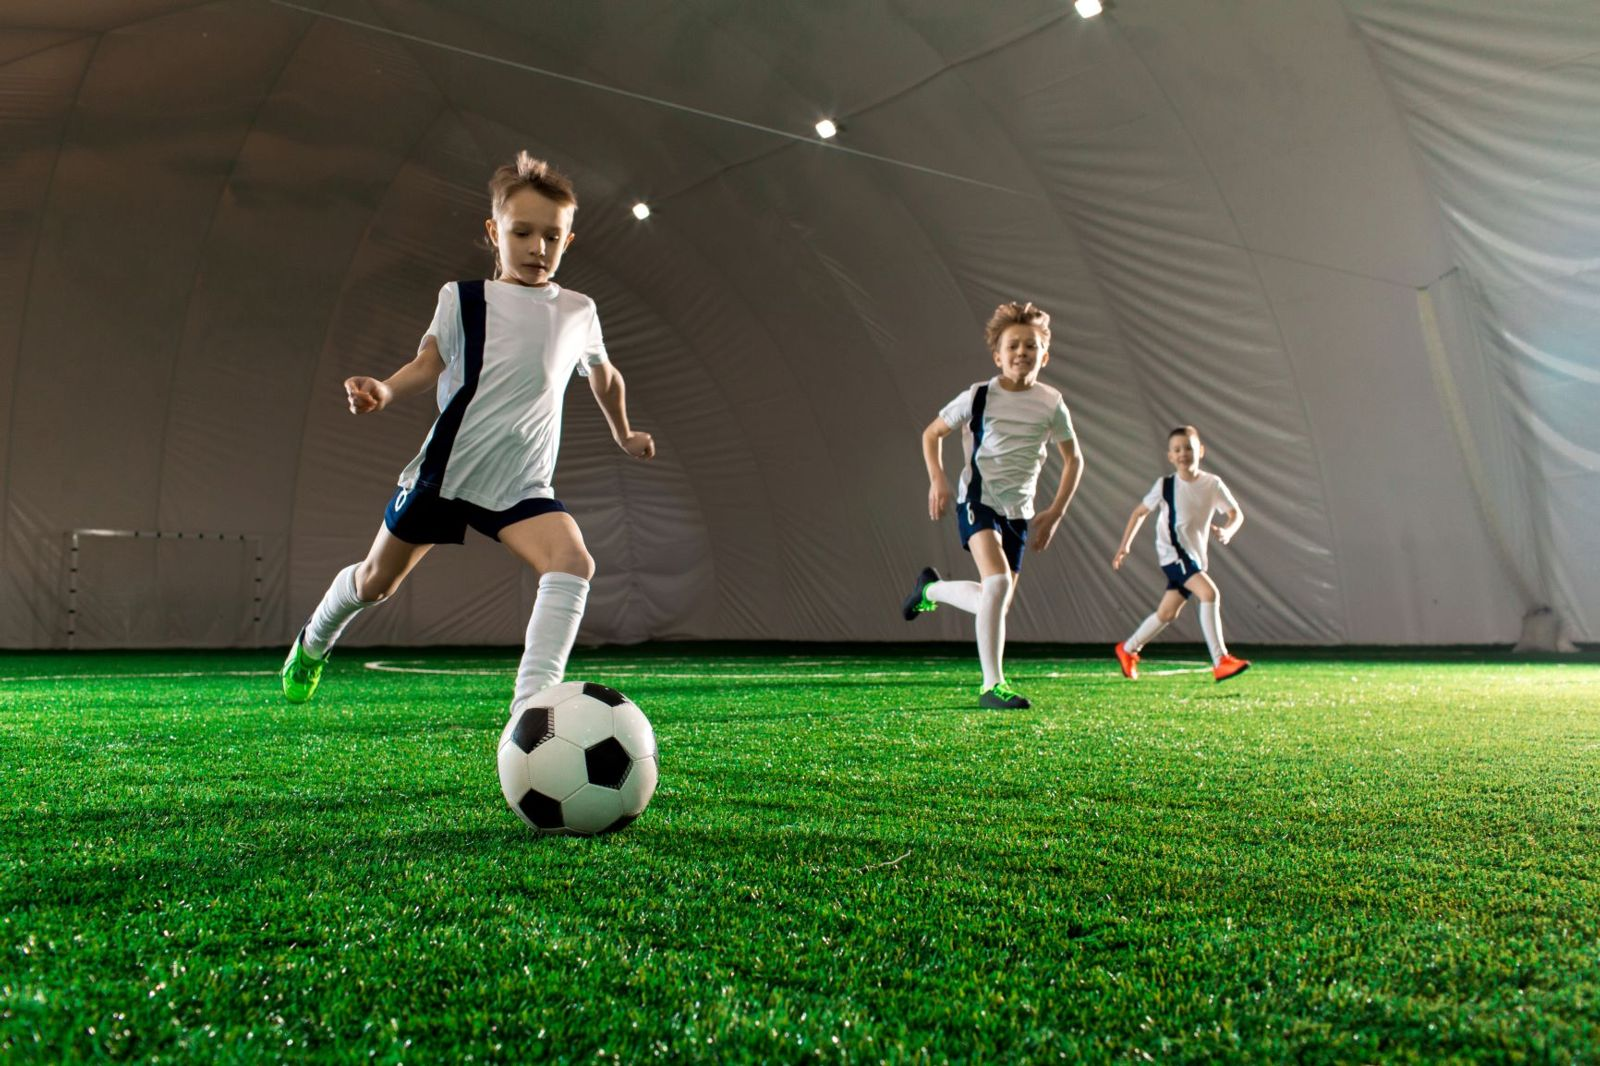 Playing on astroturf puts your little soccer player at greater risk for a painful turf-toe injury, which usually develops over time